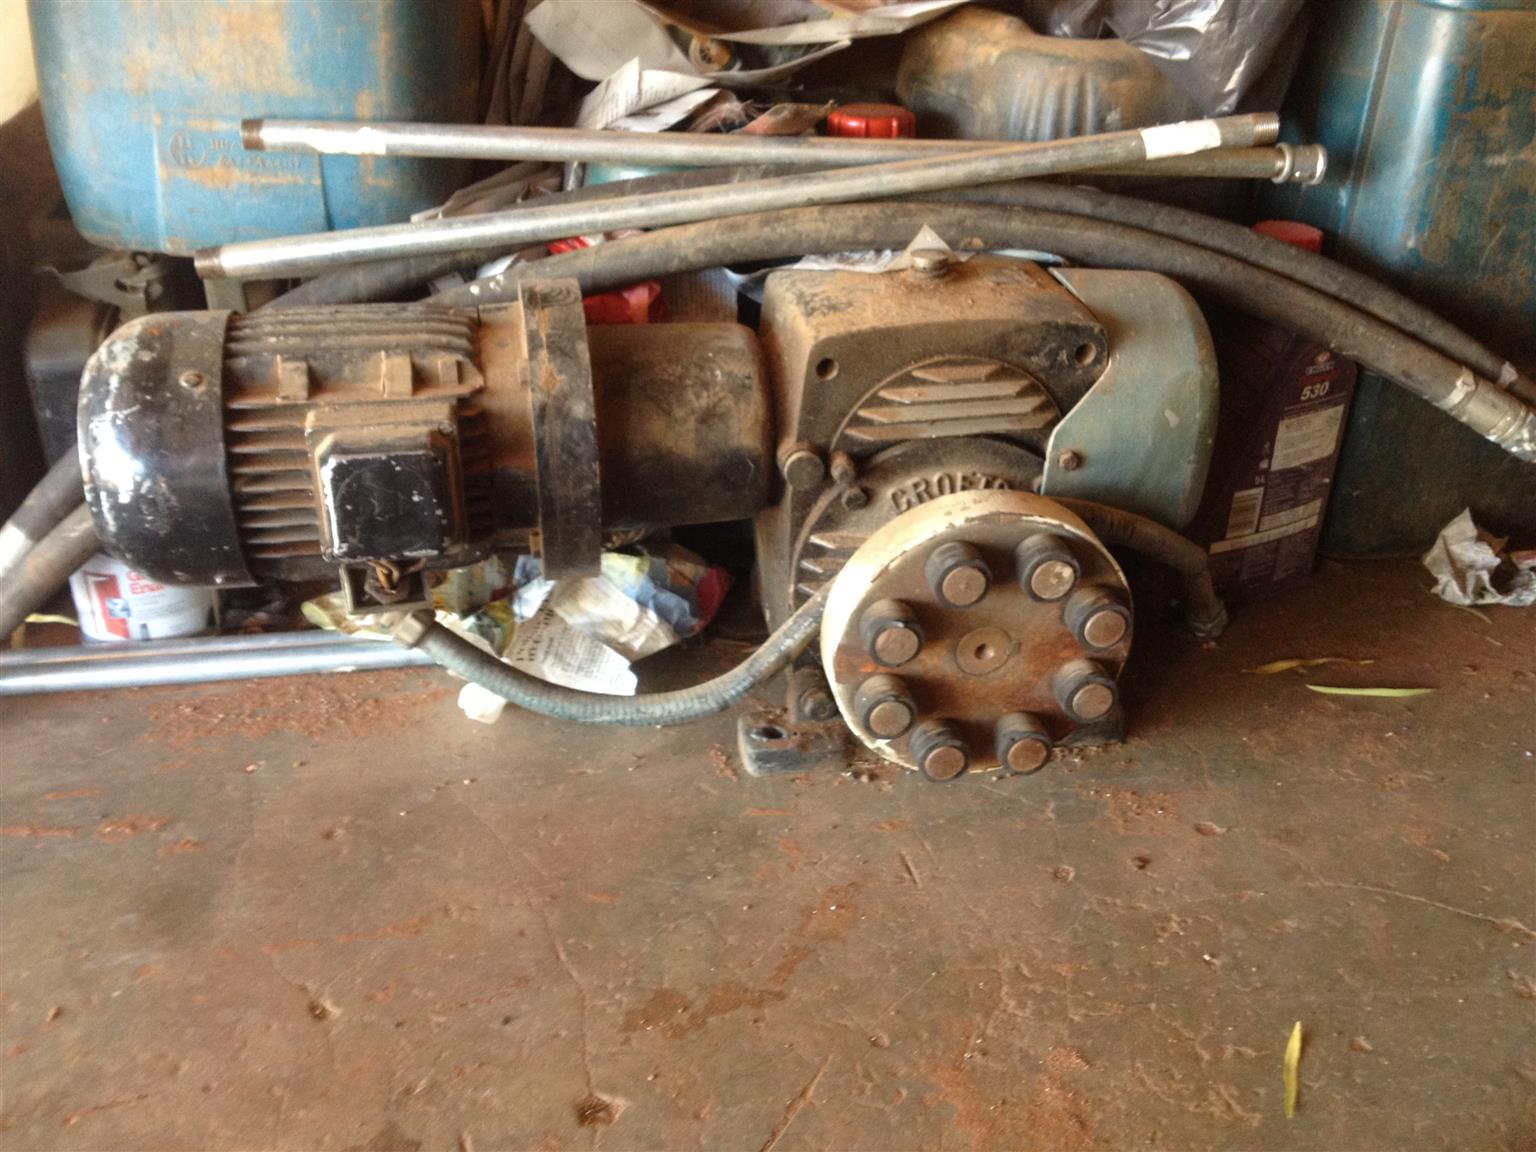 Reduction moter and gearbox